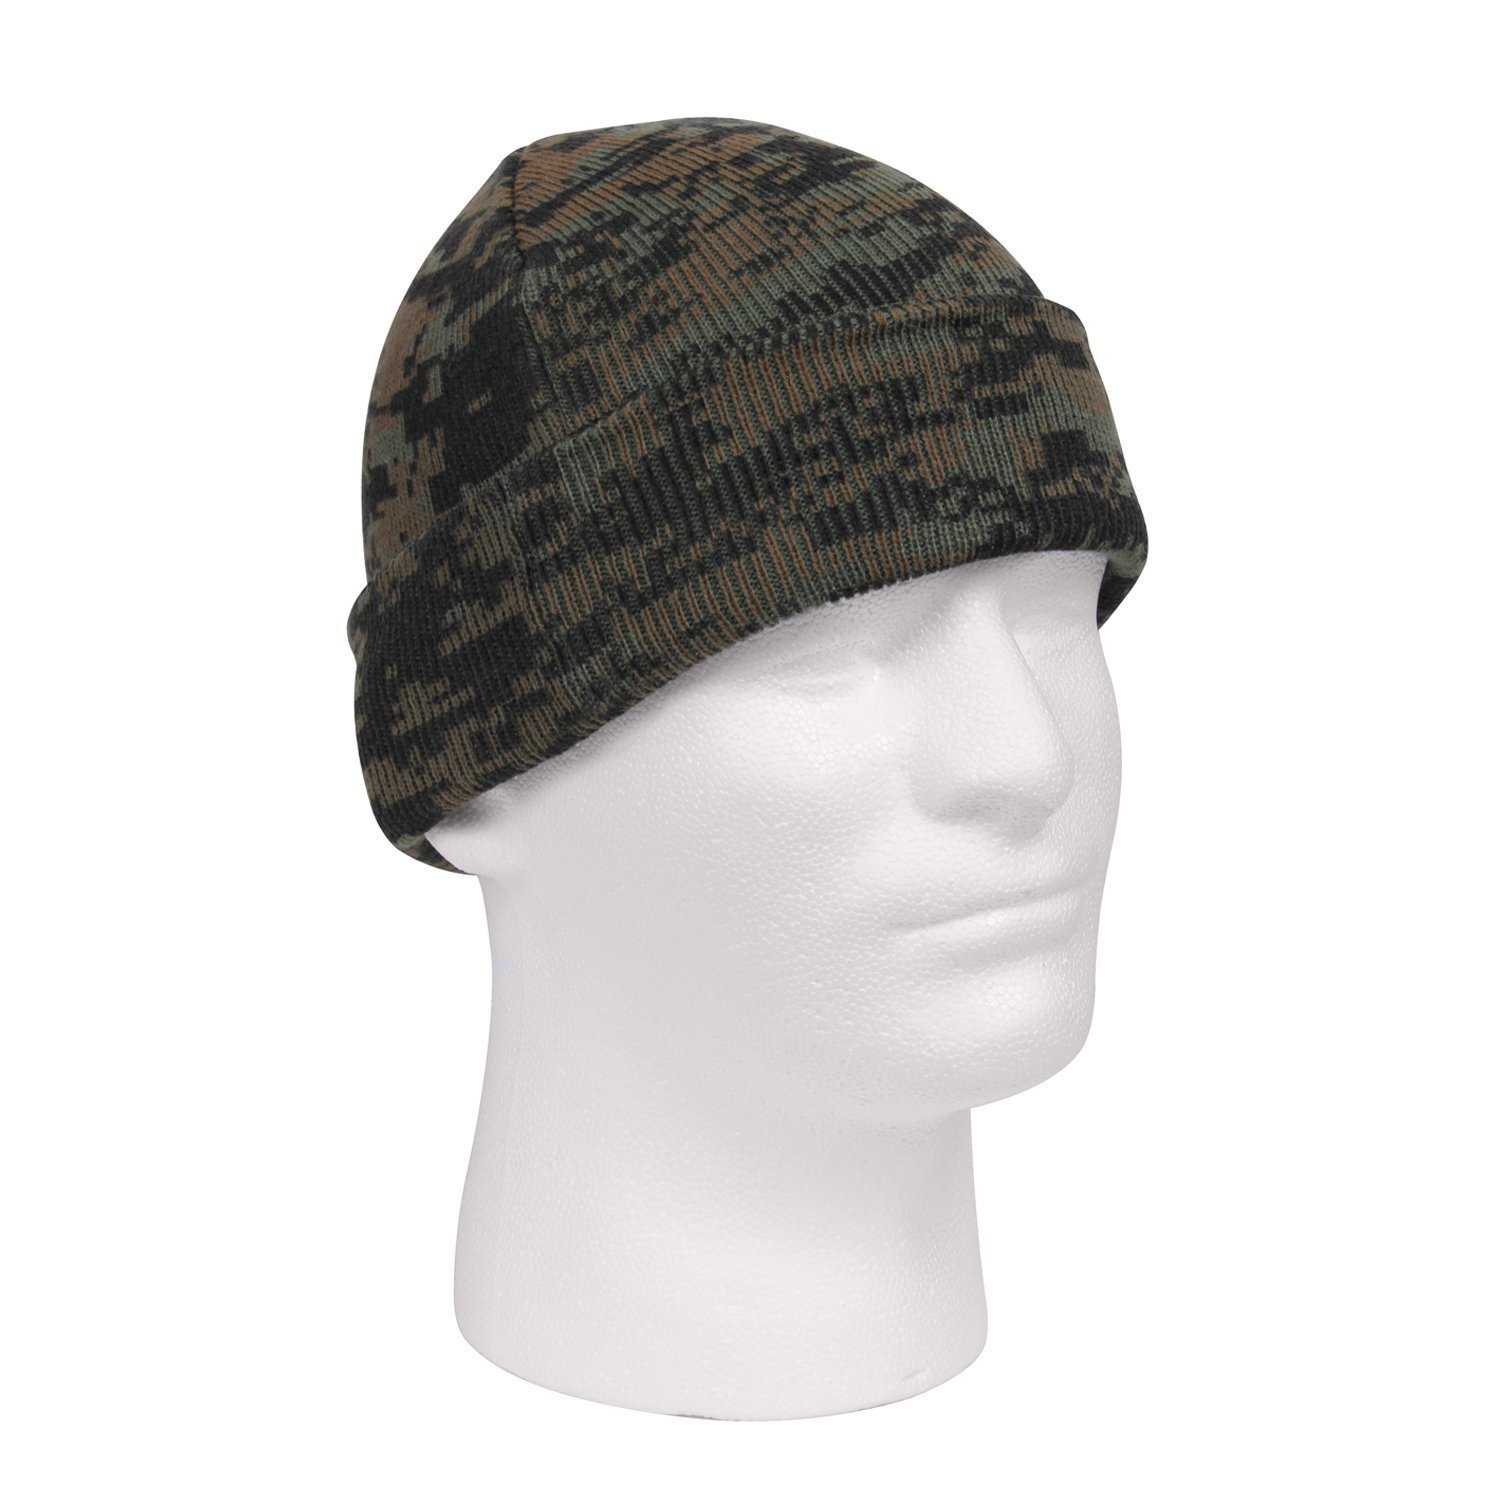 Digital Marpat Jungle Woodland Camo Camoflauge Acrylic Watch Cap Hat Tactical Hunting Cap Outdoor Military